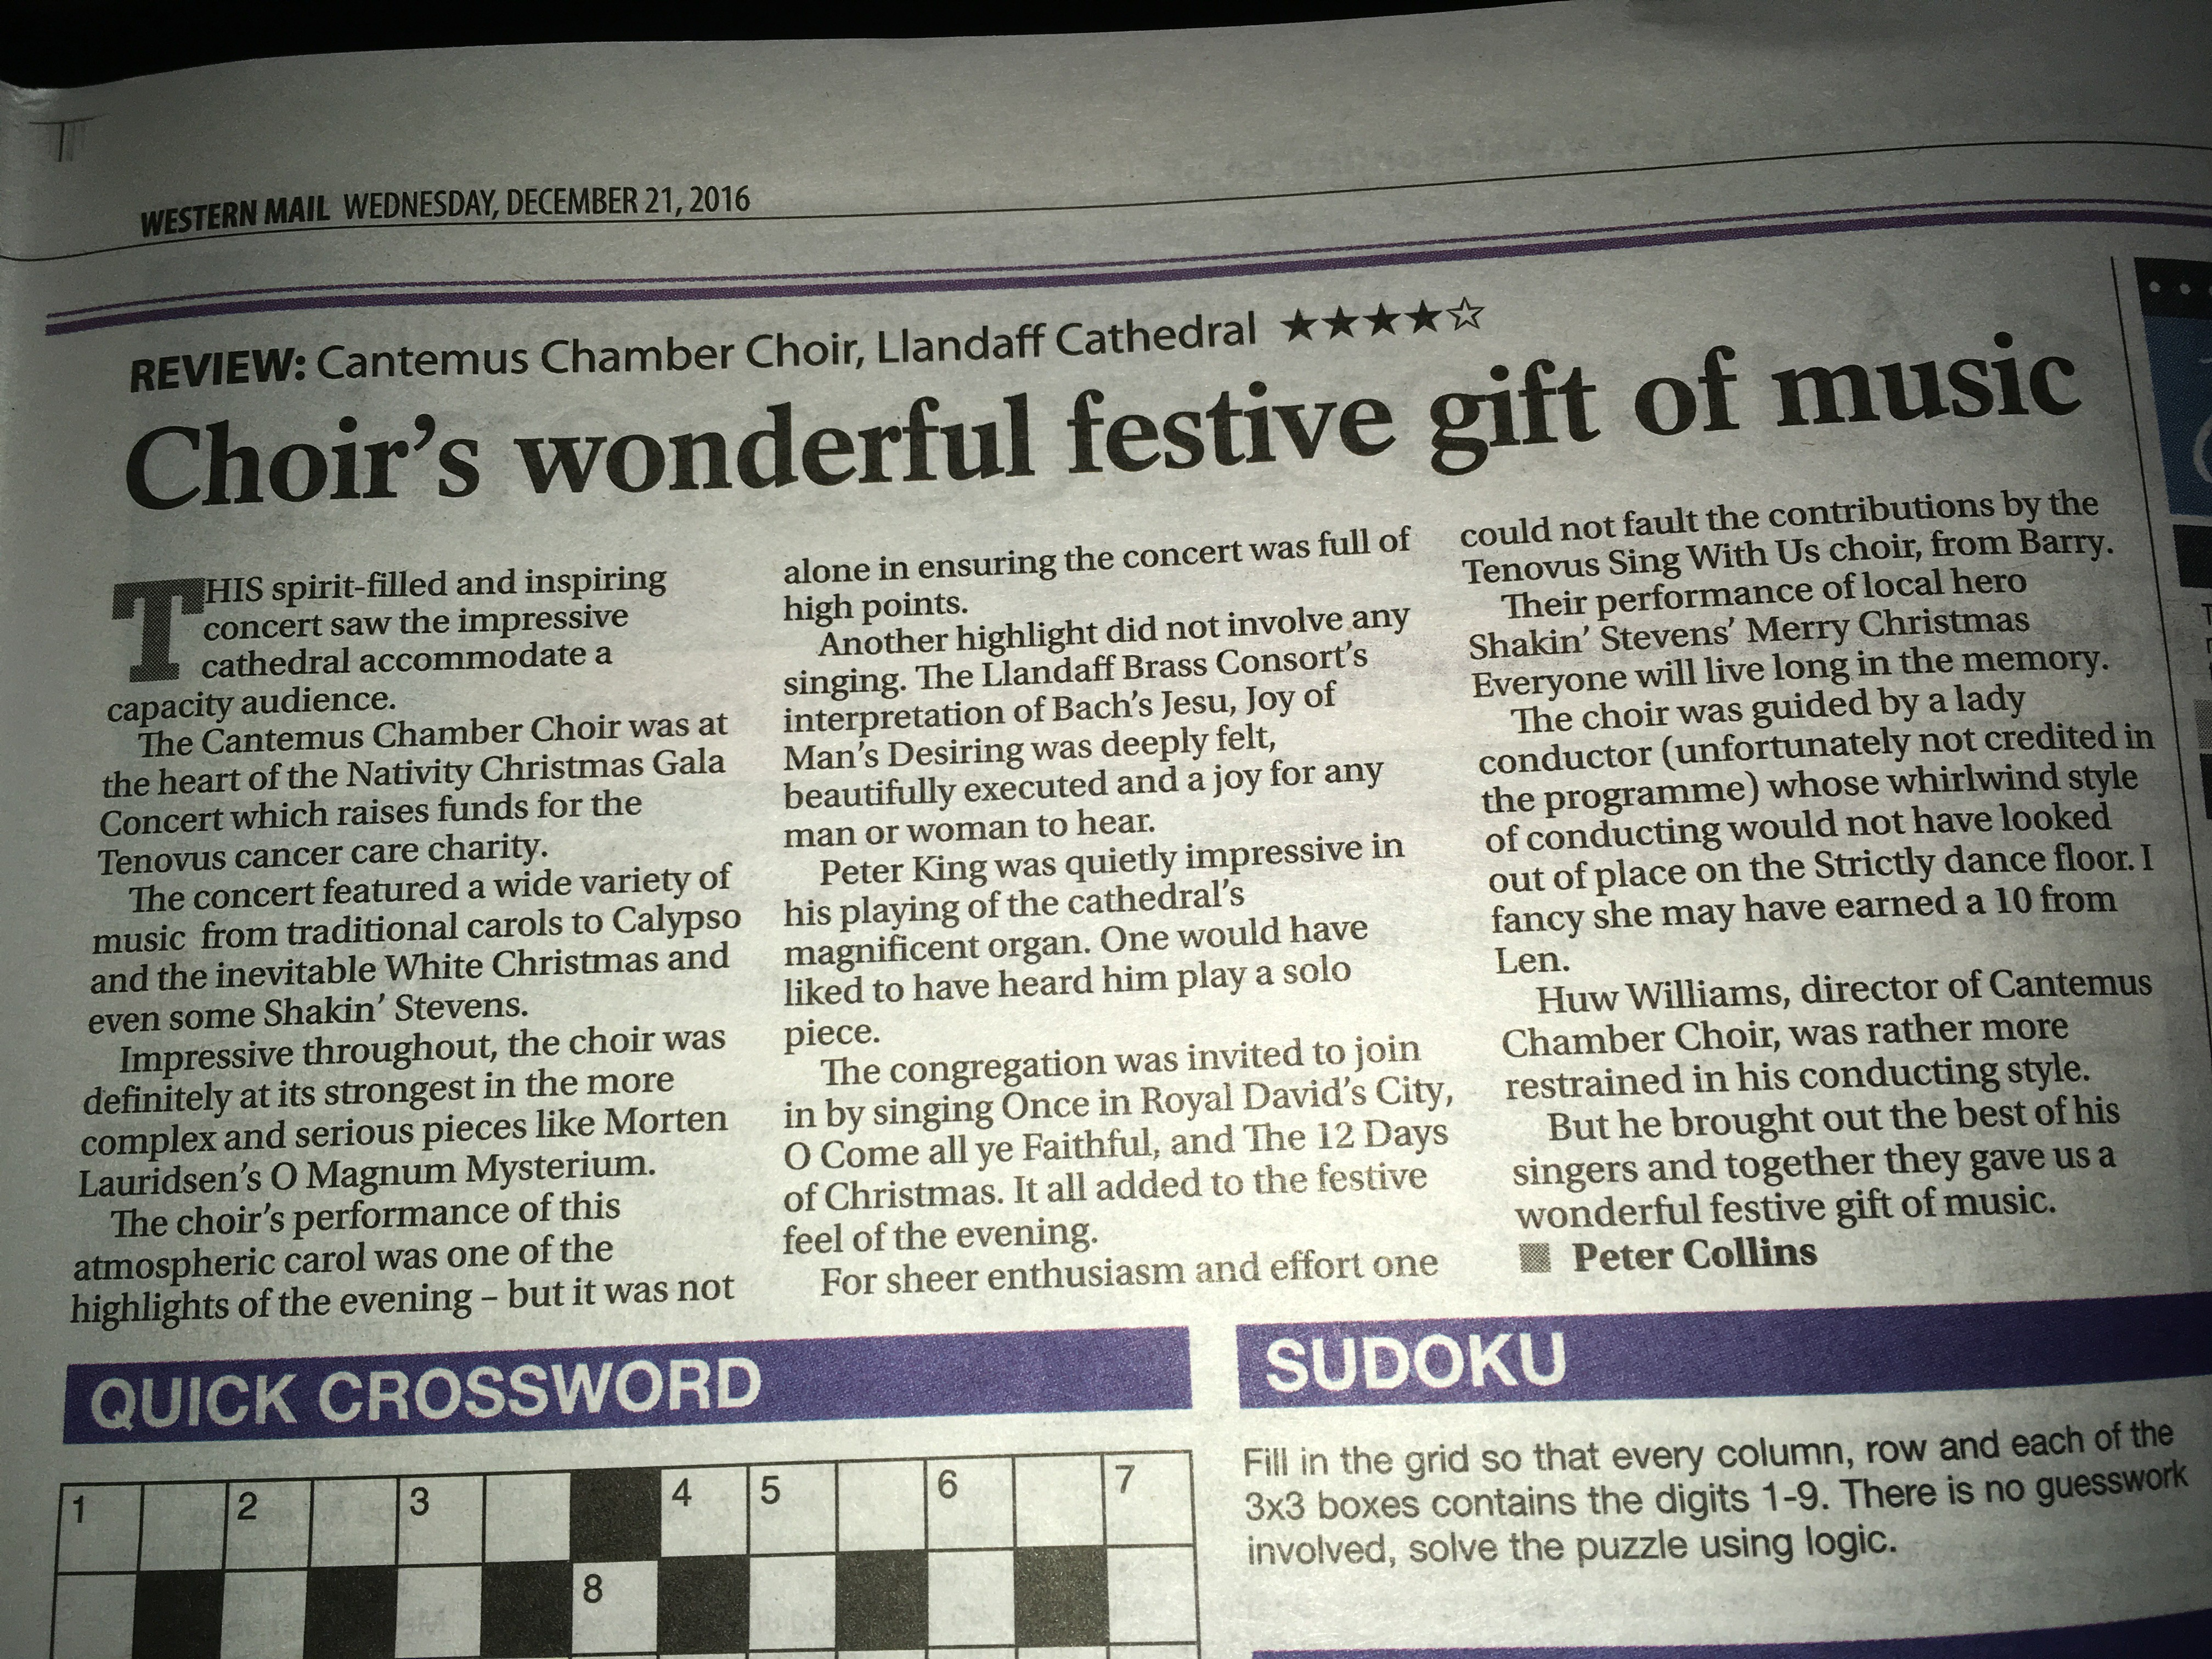 Our four-star review in the Western Mail